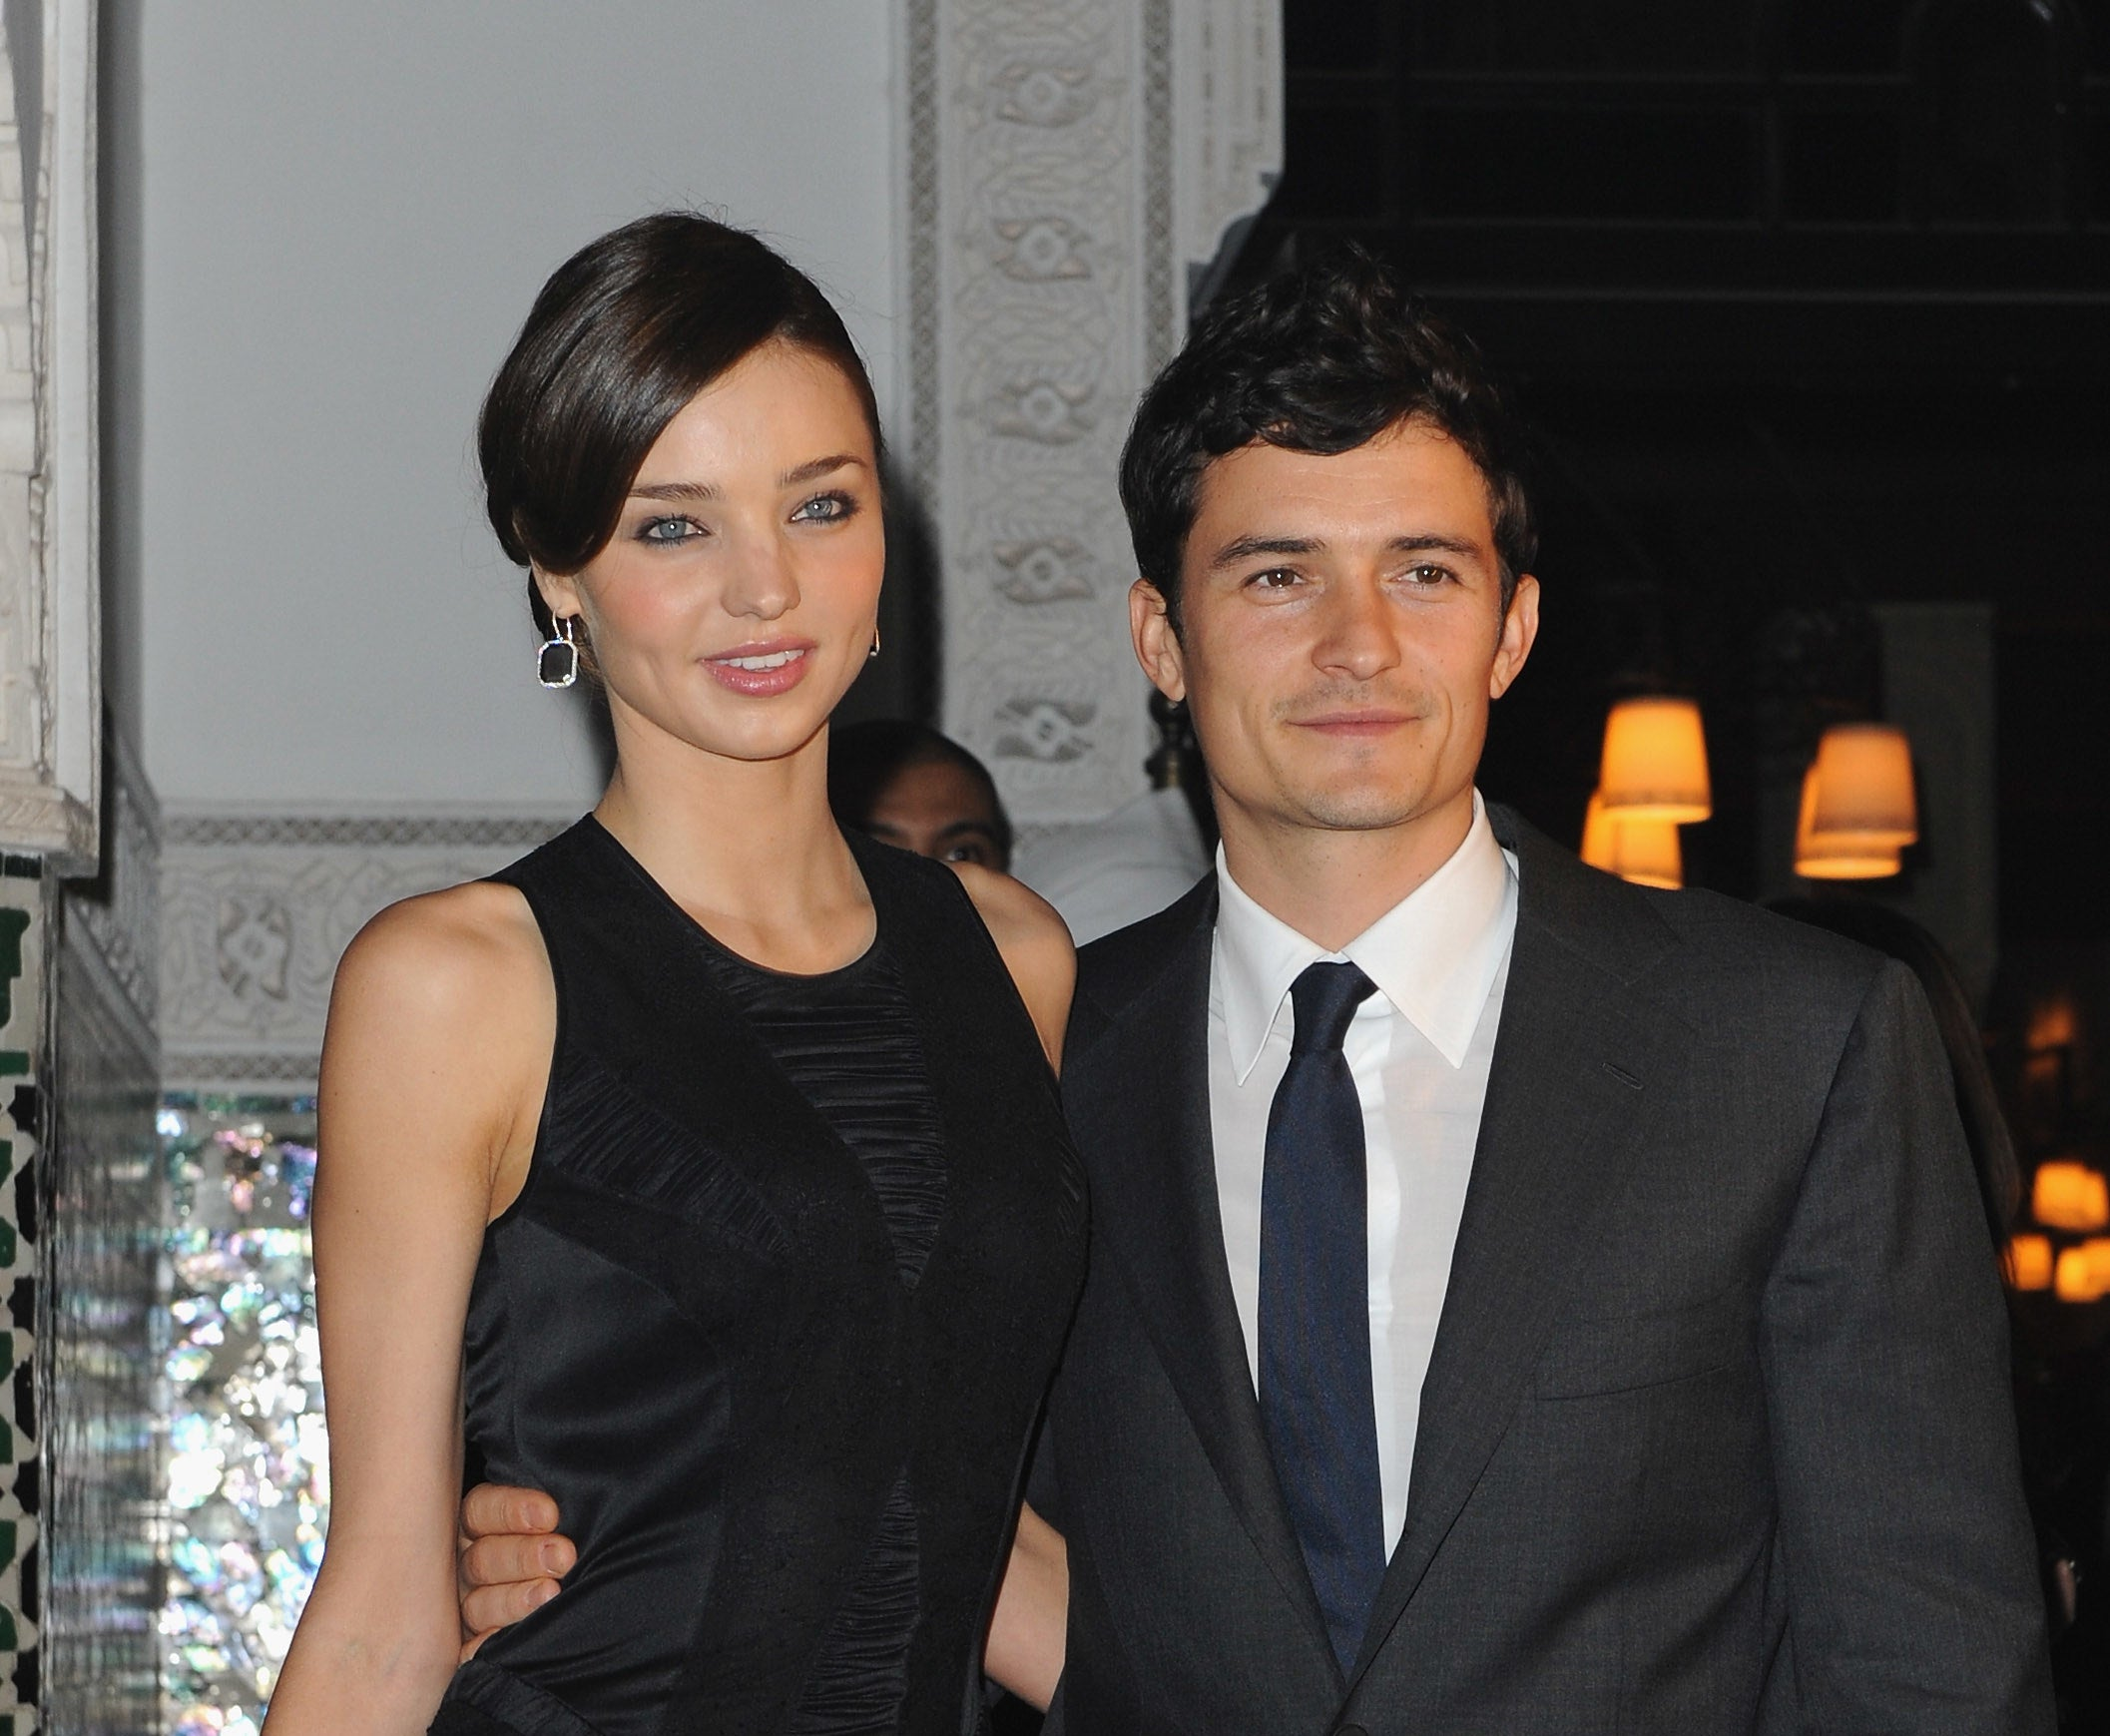 Miranda Kerr in a black gown and Orlando Bloom in dark grey suit and navy tie at an even in 2009.